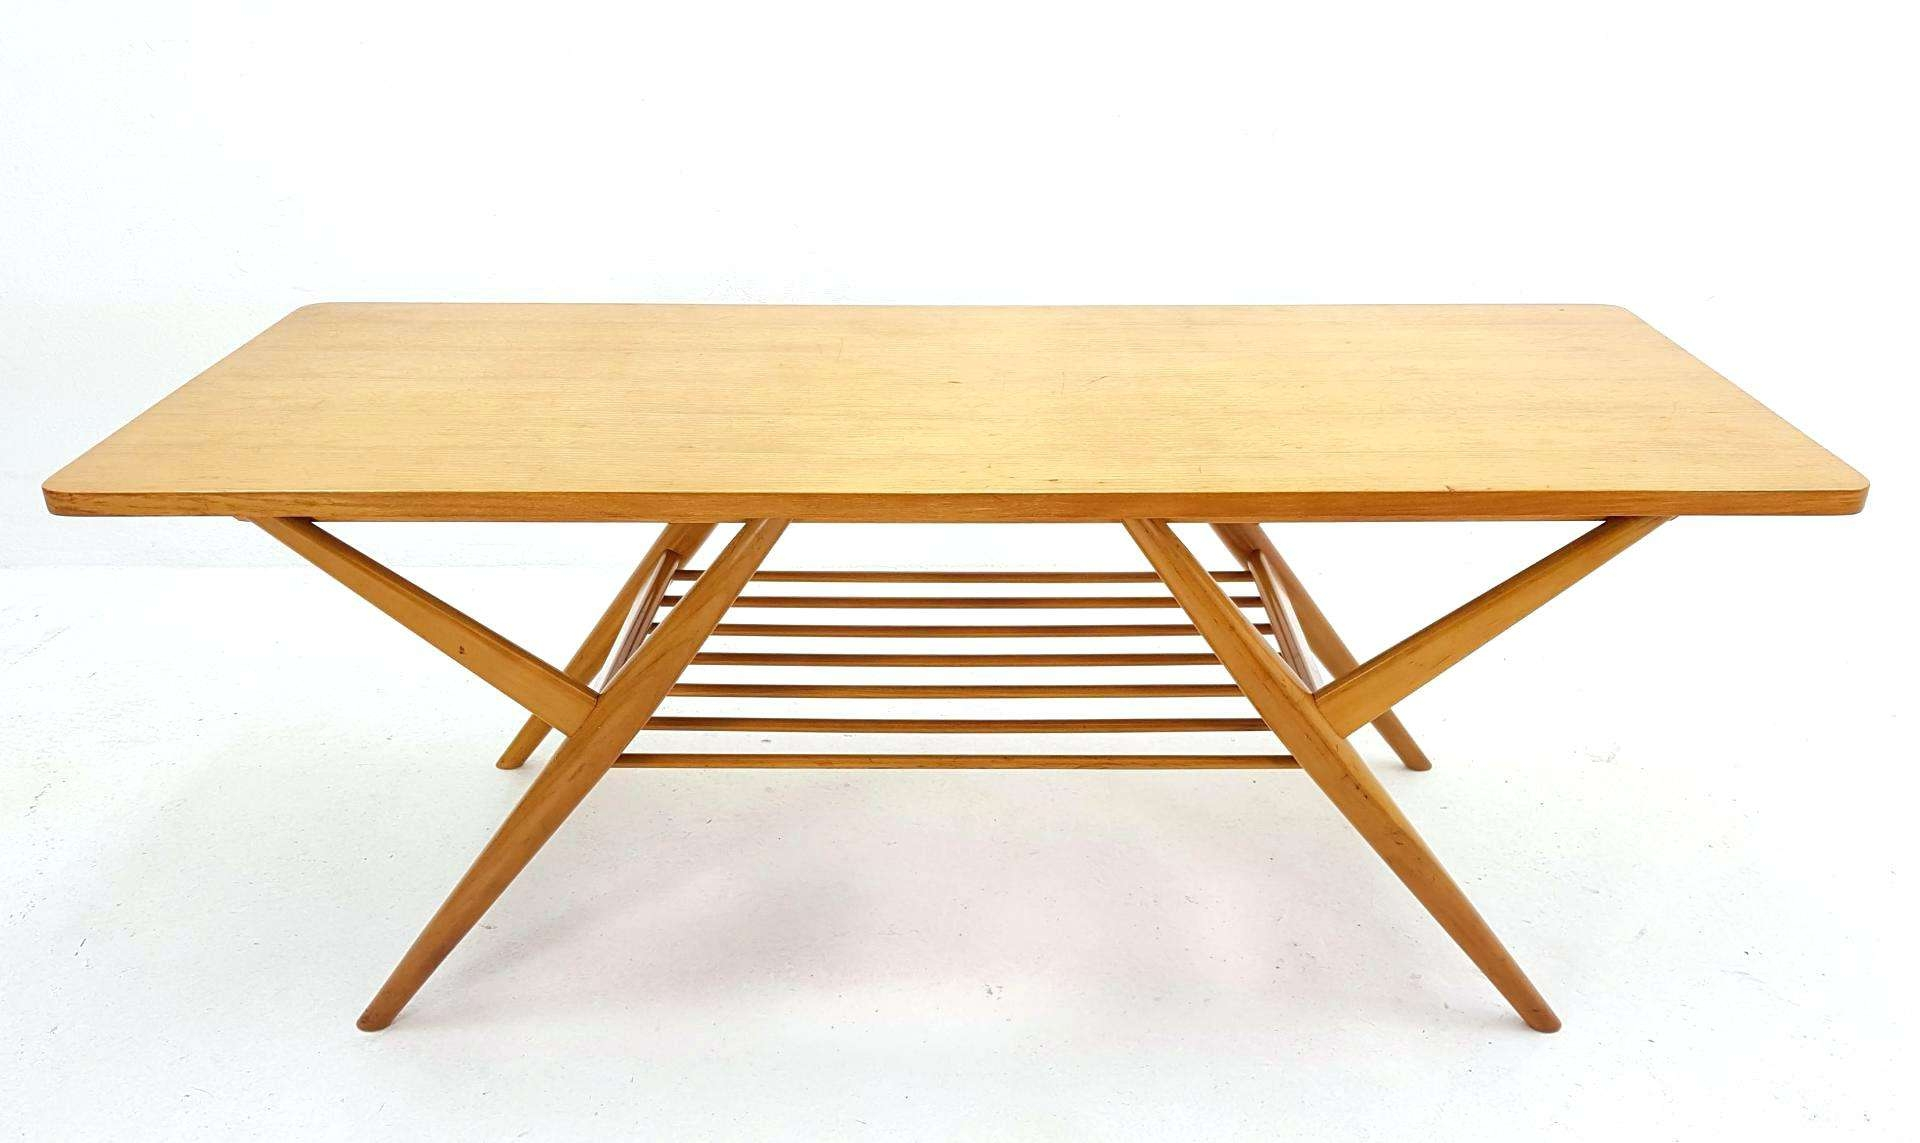 Birch Wood Coffee Table Full Size Of Ikea – Thewkndedit With Best And Newest Birch Coffee Tables (View 20 of 20)